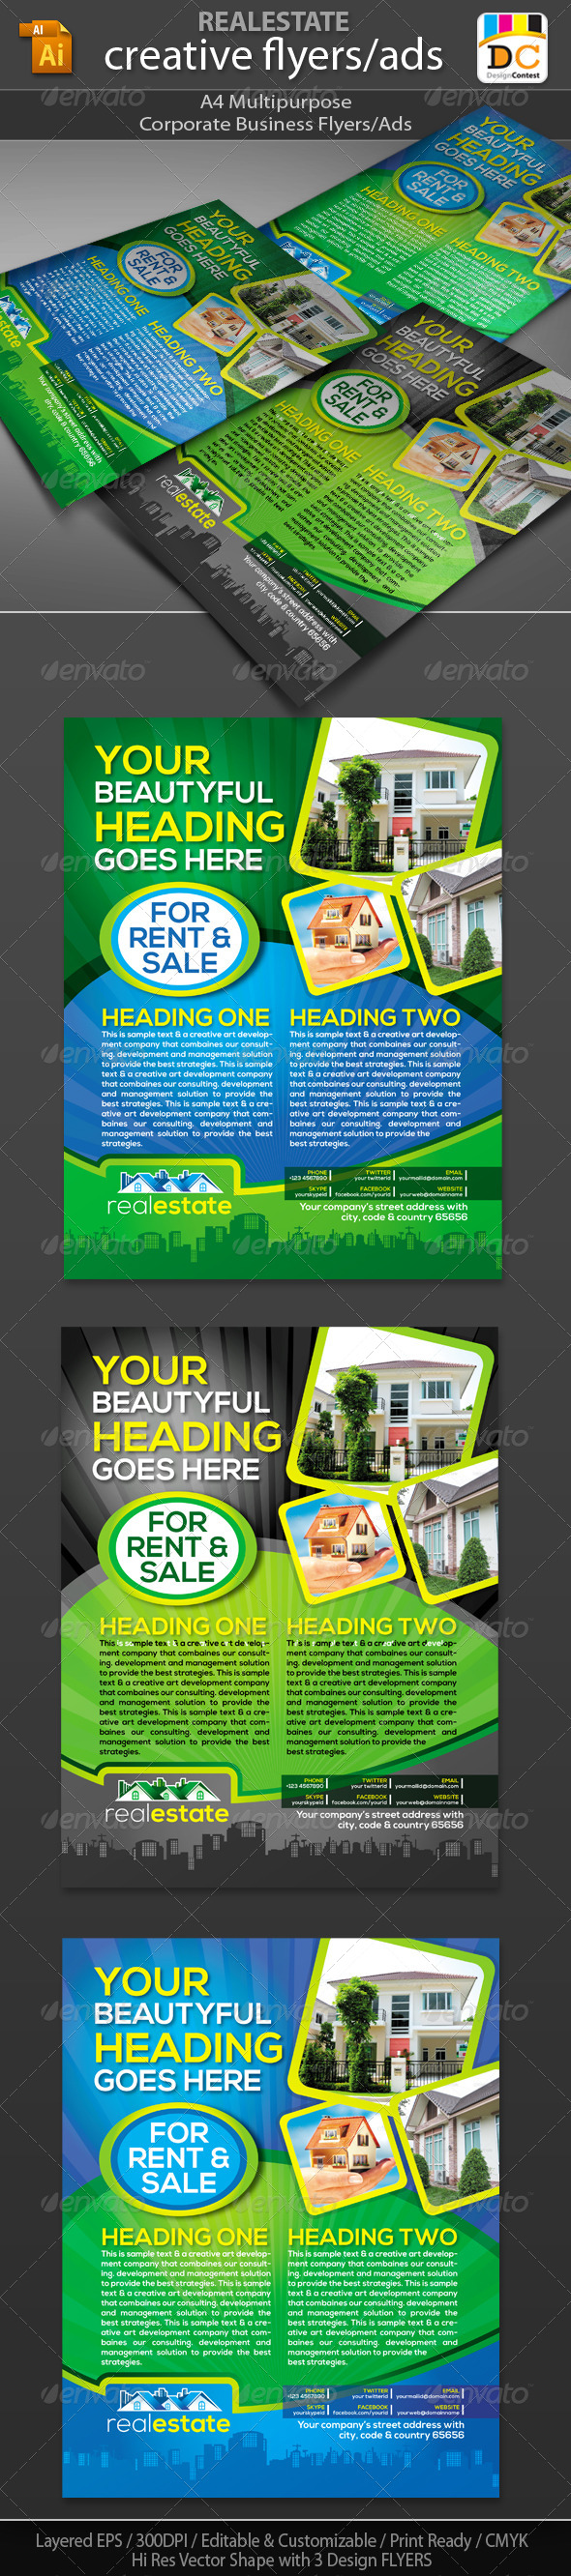 Real Estate Corporate Business Flyers Adds